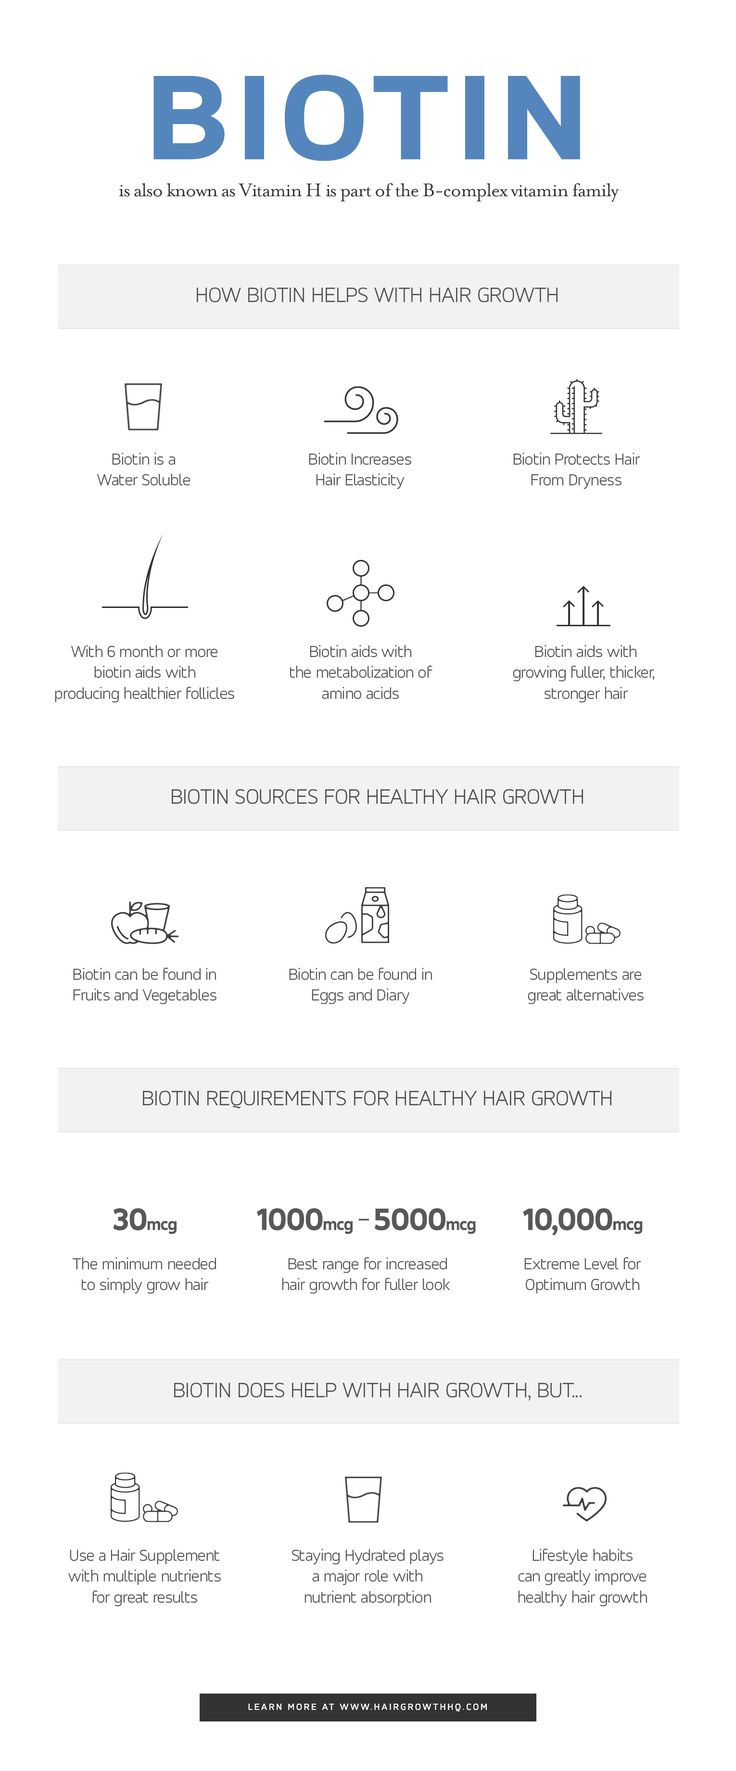 Biotin and Hair Growth - How Biotin helps with healthy hair growth | Hairgrowthhq.com